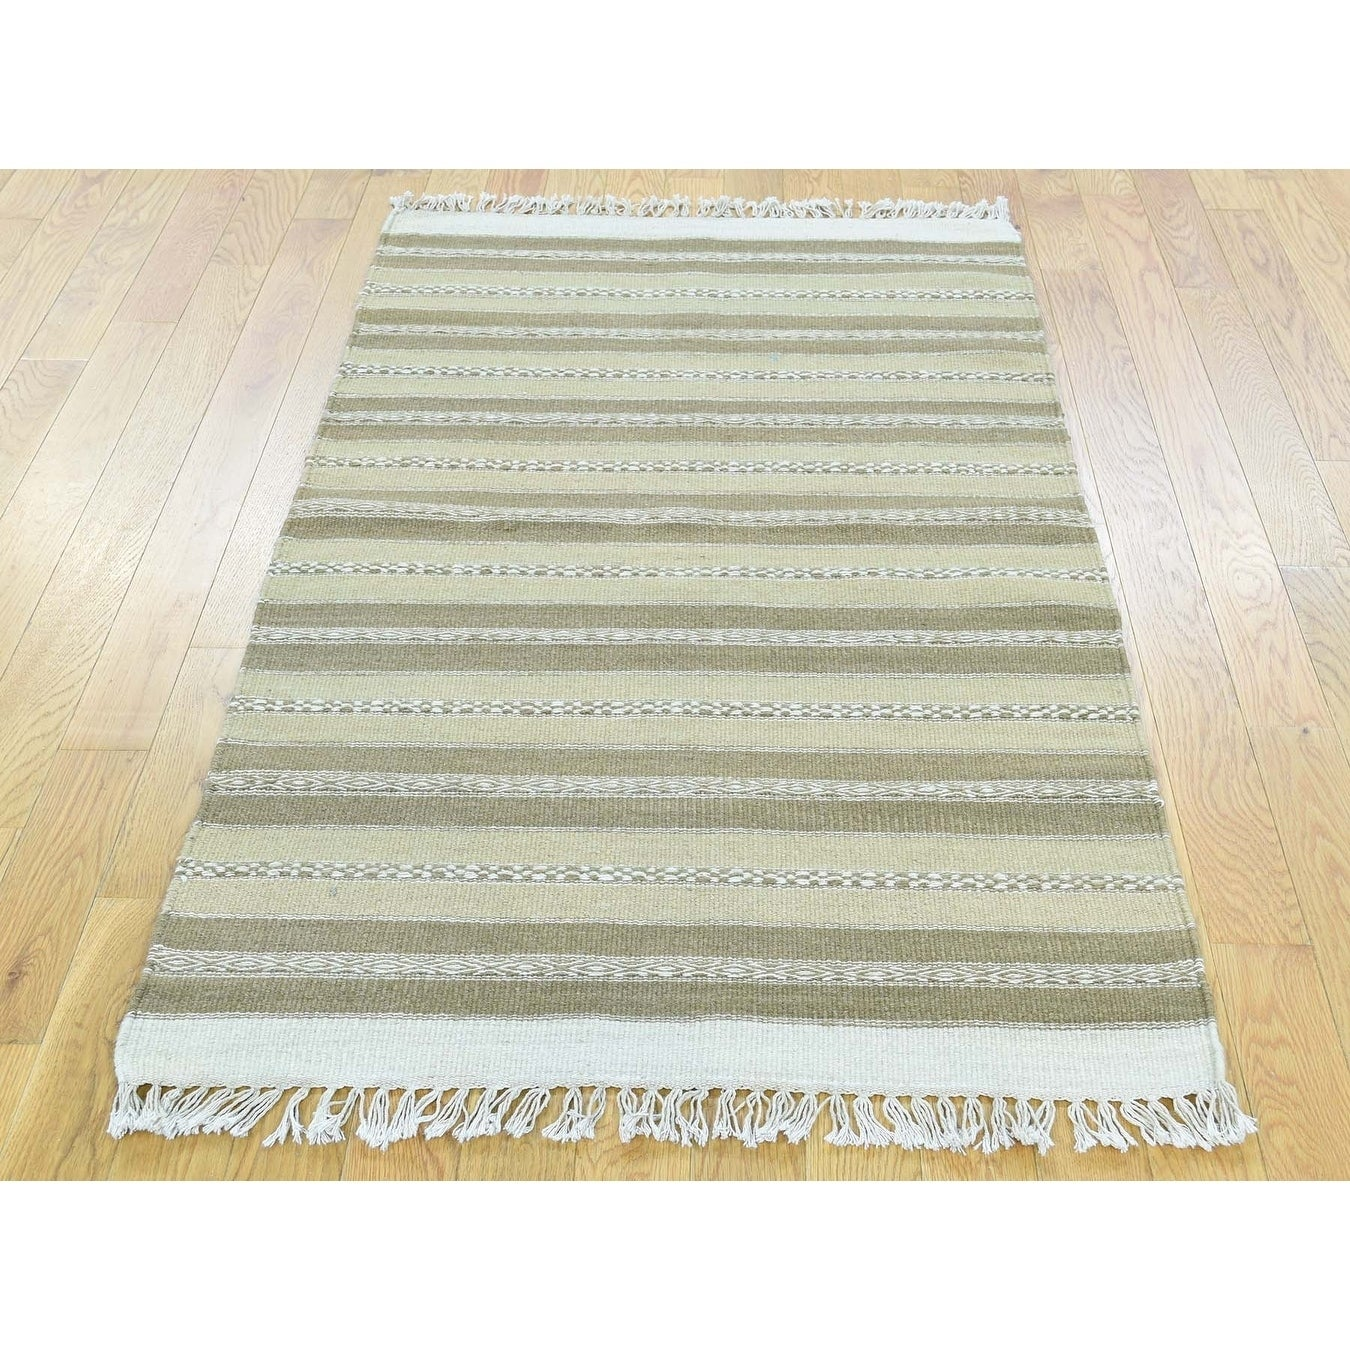 Hand Knotted Multicolored Flat Weave with Wool Oriental Rug - 29 x 410